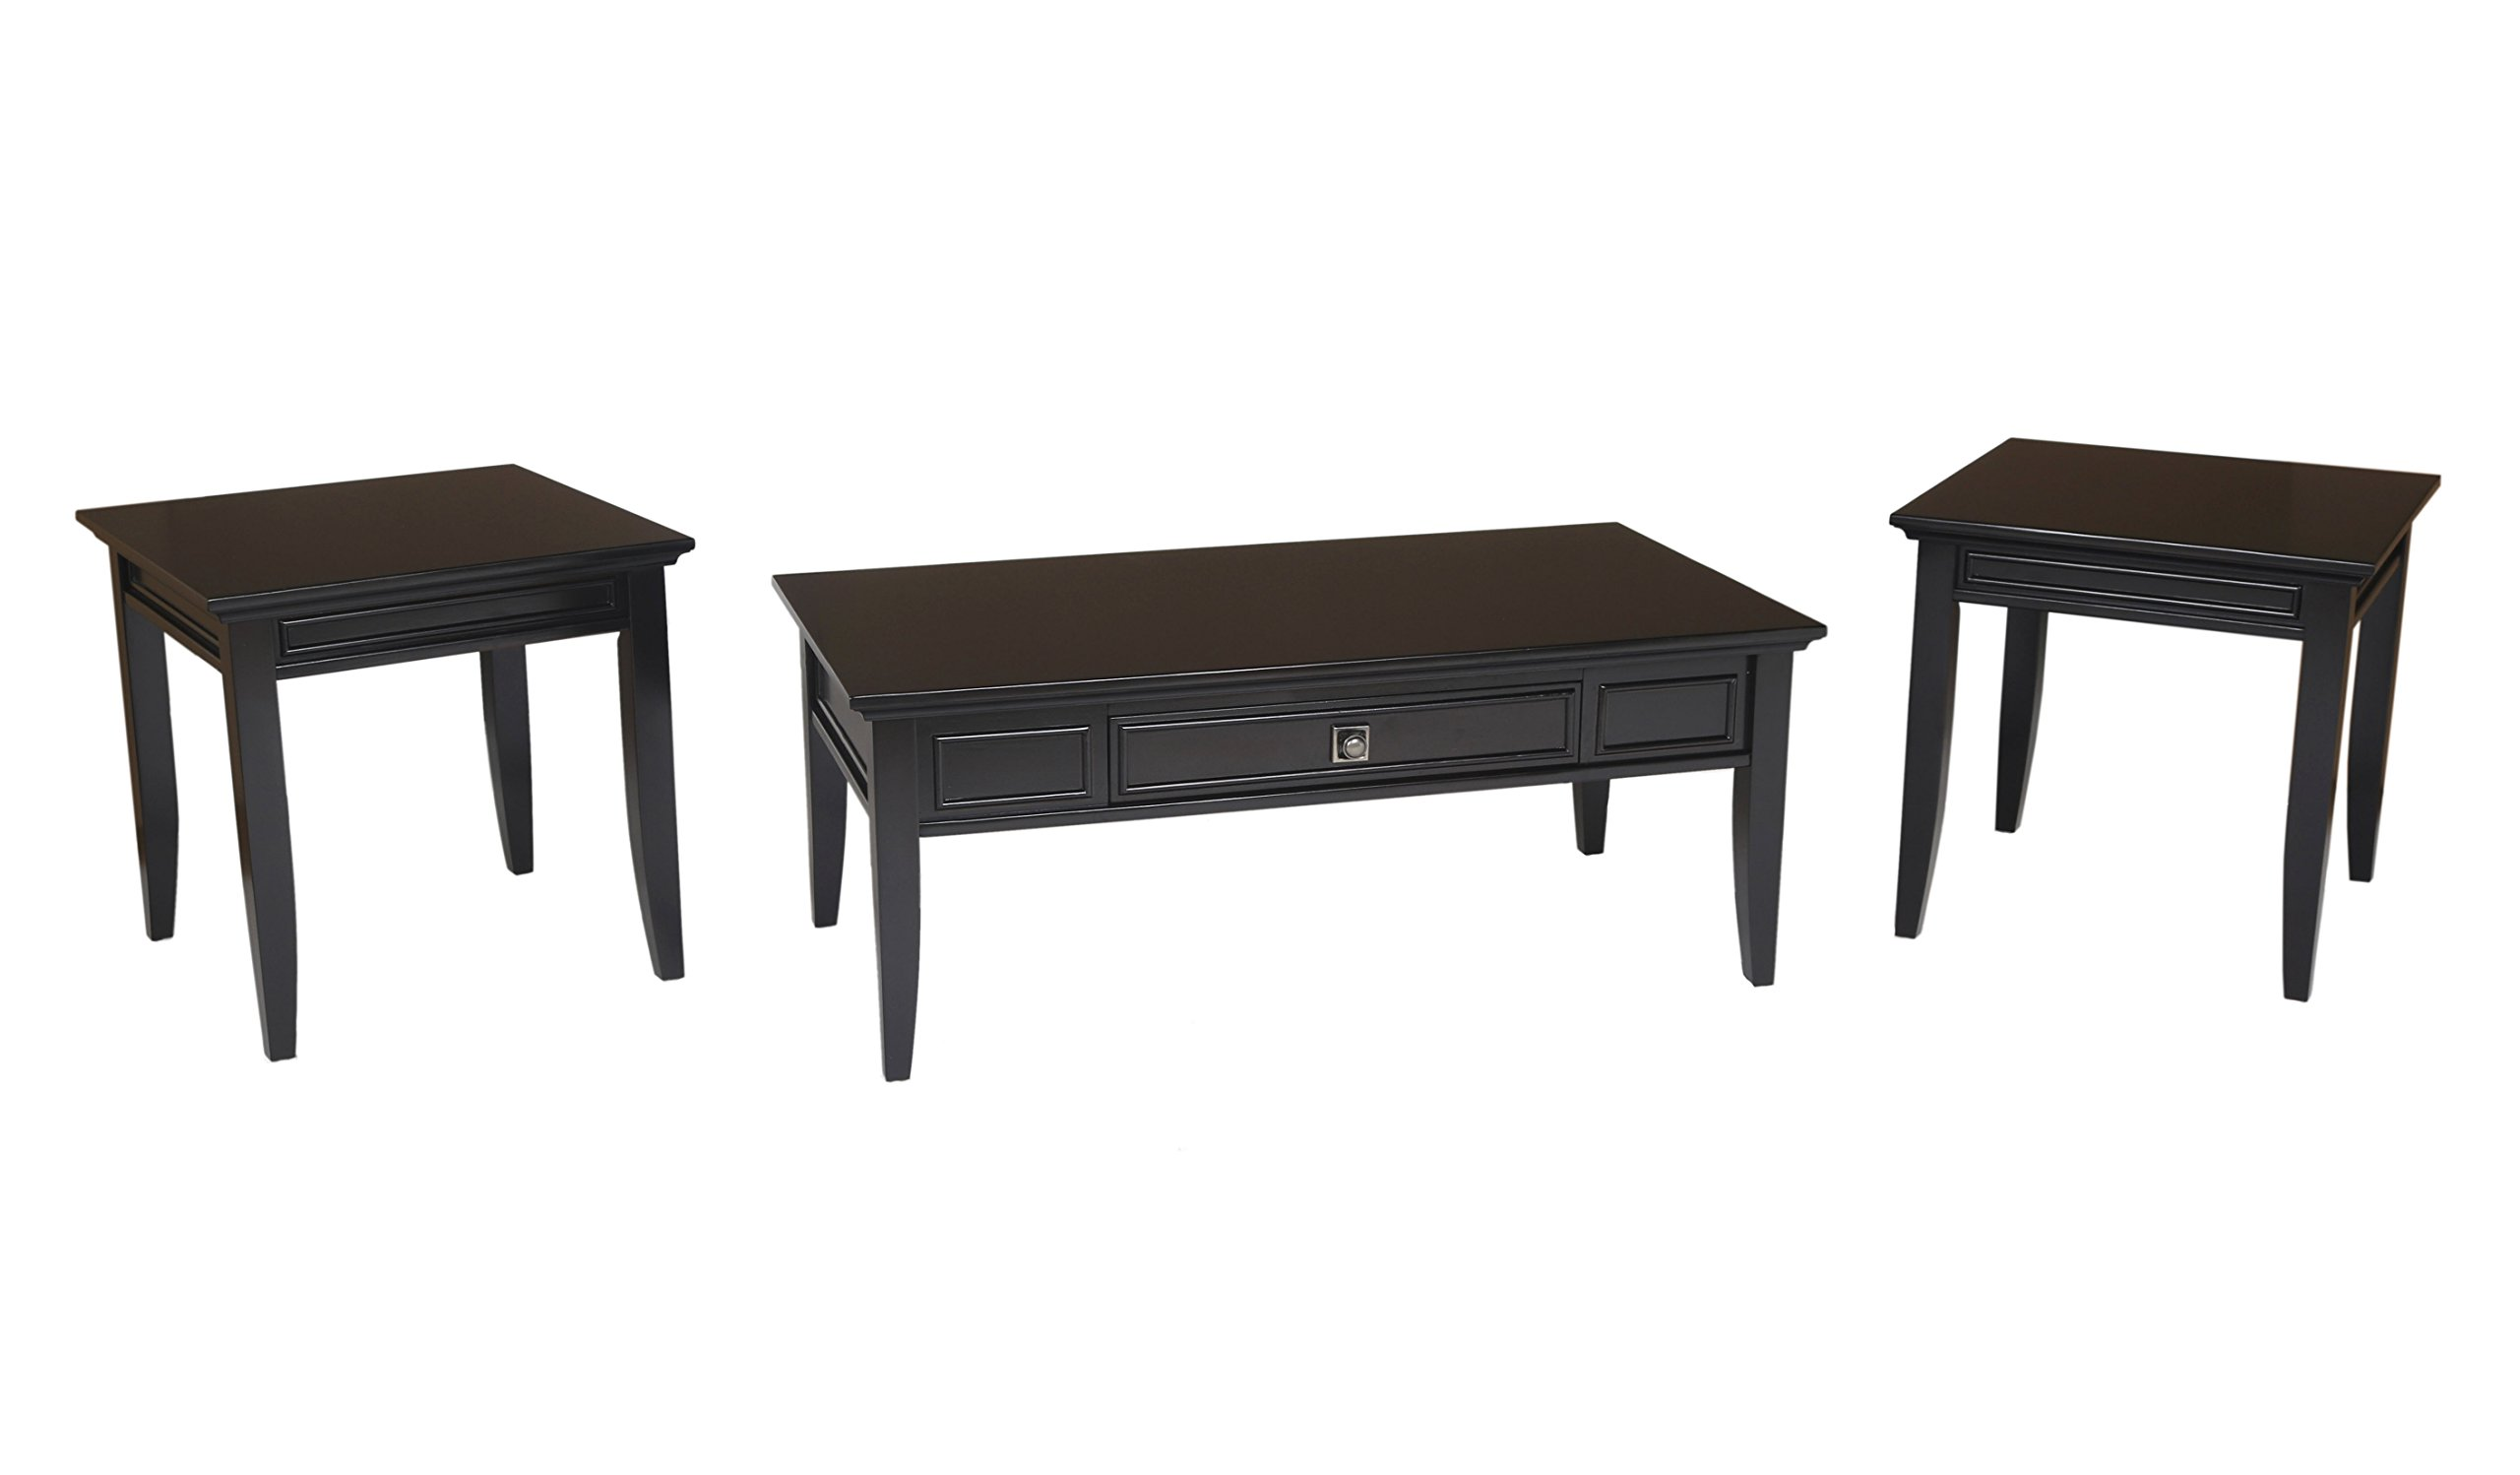 New Classic Franklin Park Espresso Occasional Tables (3 Pack) by New Classic Furniture